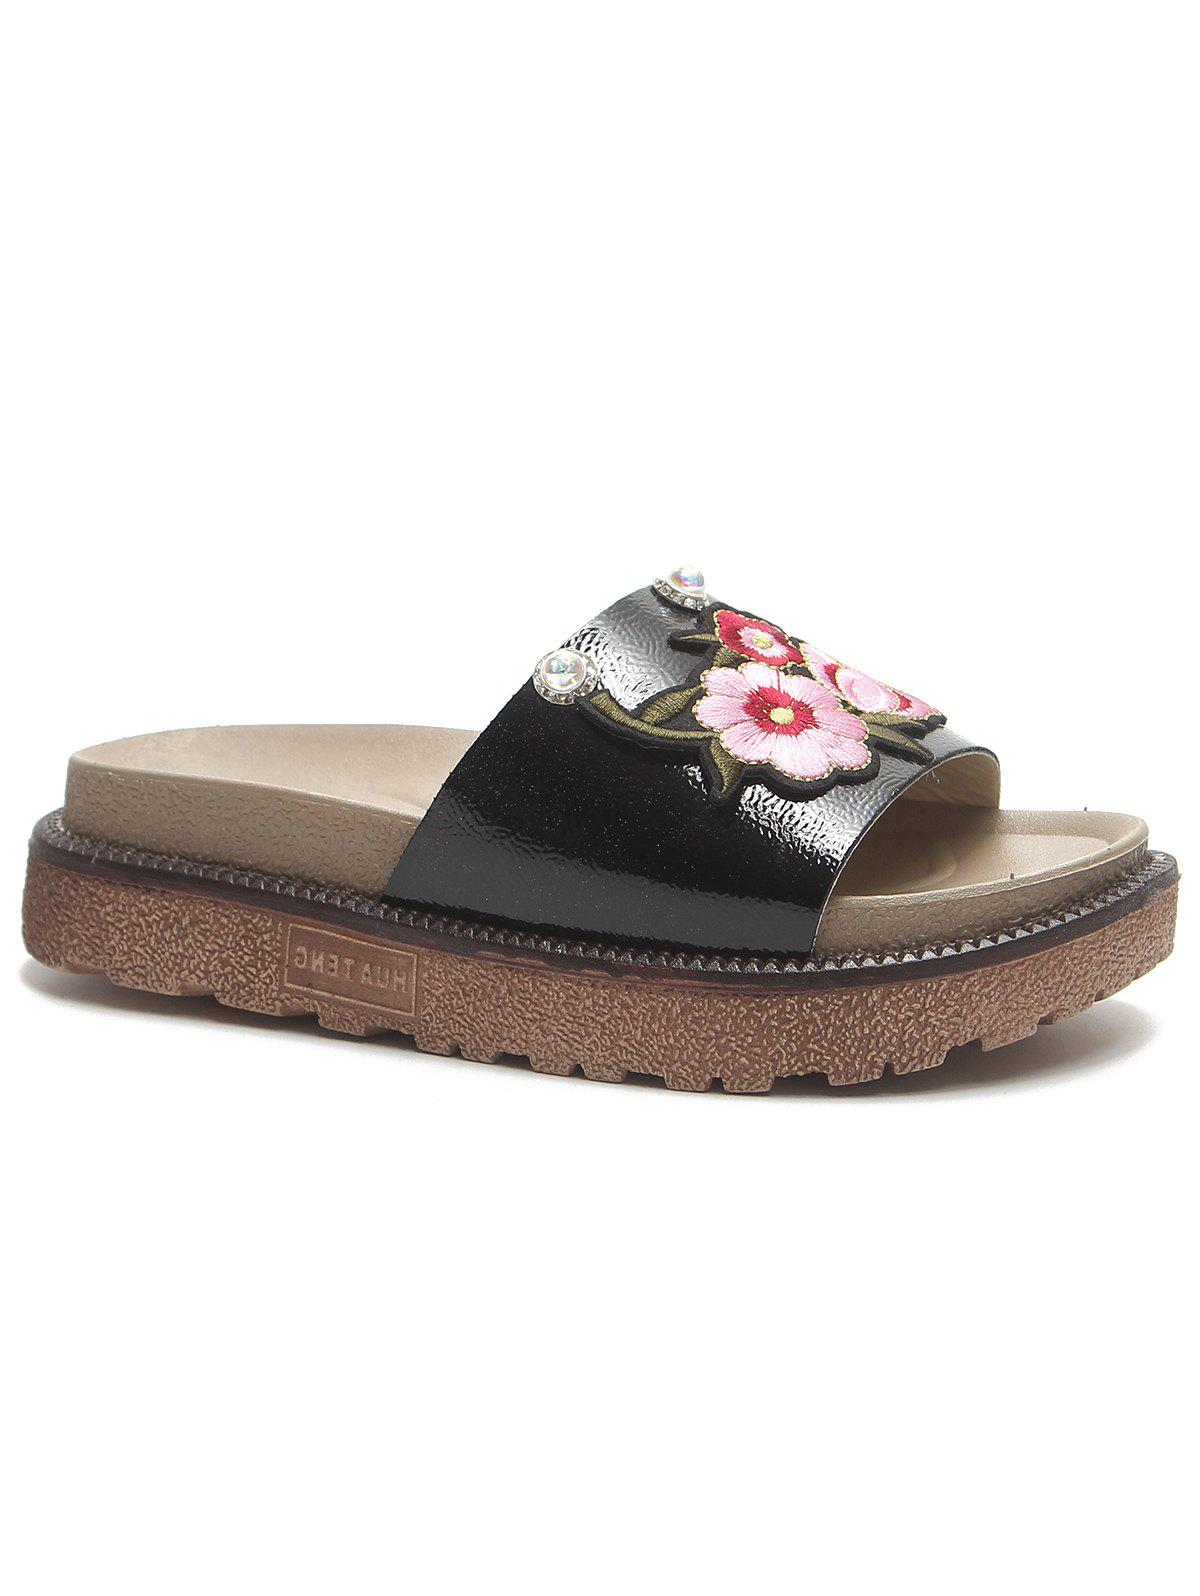 Outfit Outdoor Casual Floral Decorated Platform Slides